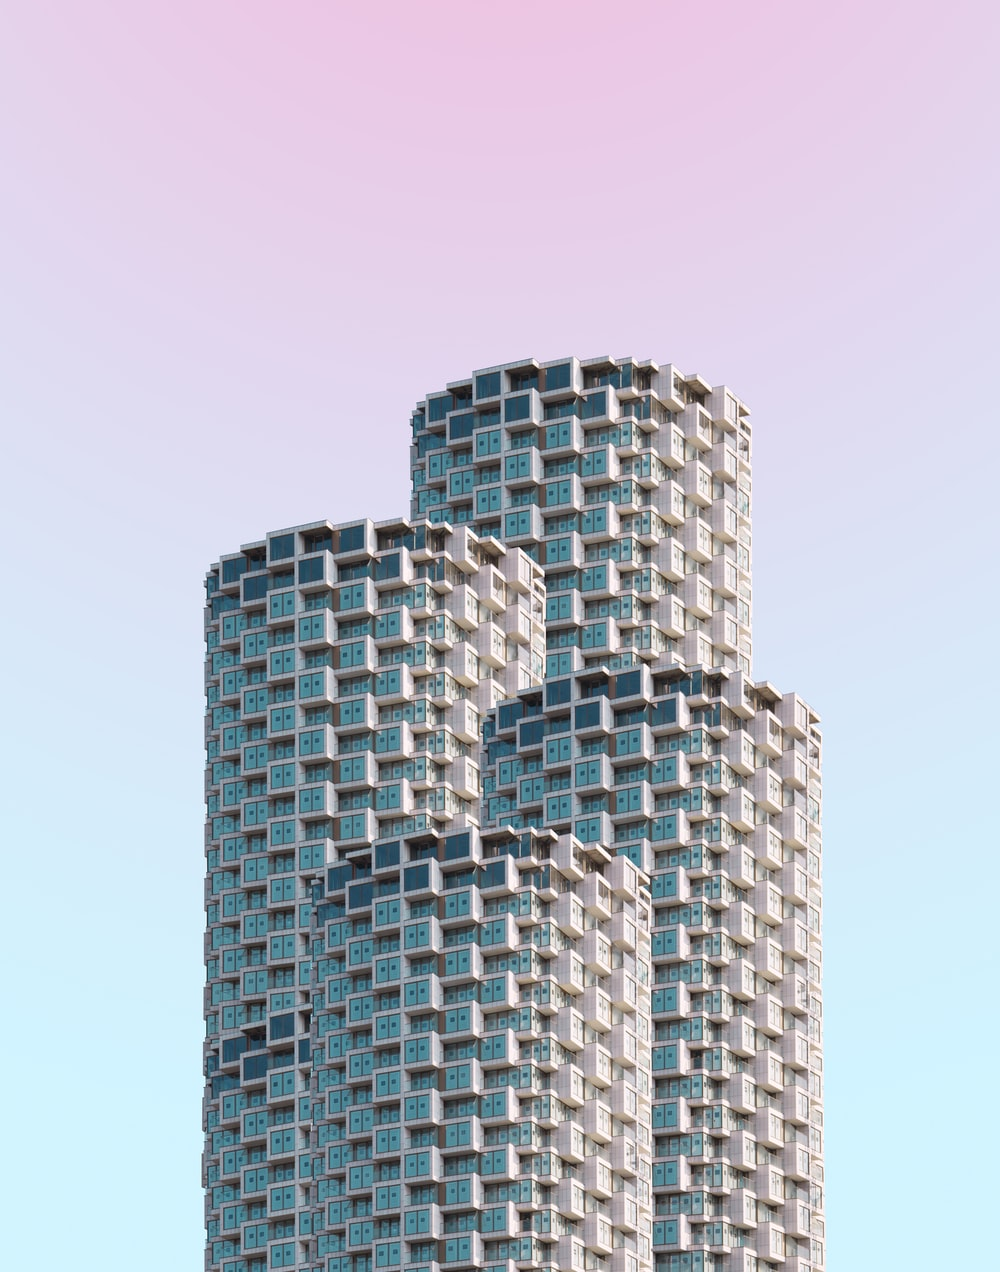 gray concrete building under clear blue sky